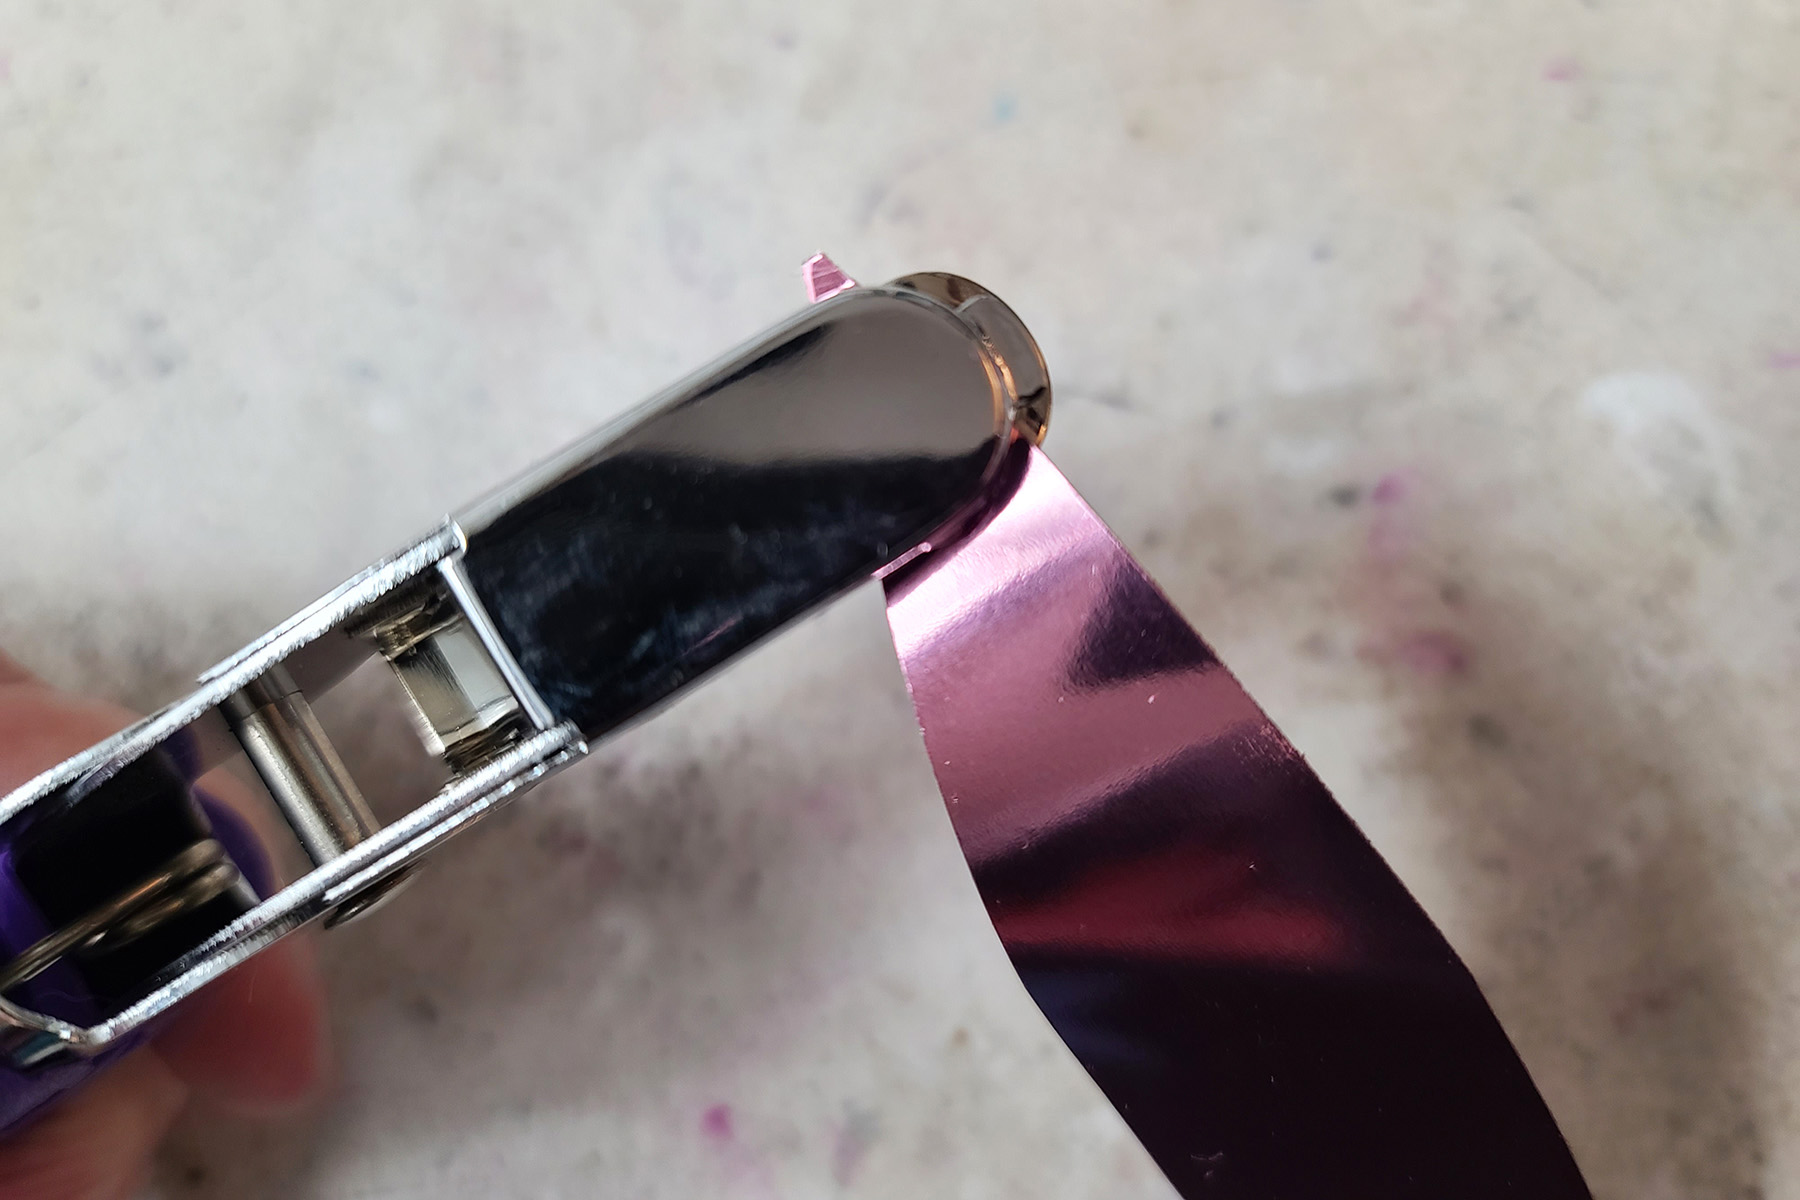 A hole punch is being used to create a small hole in one pointed end of a leaf shape sequin.